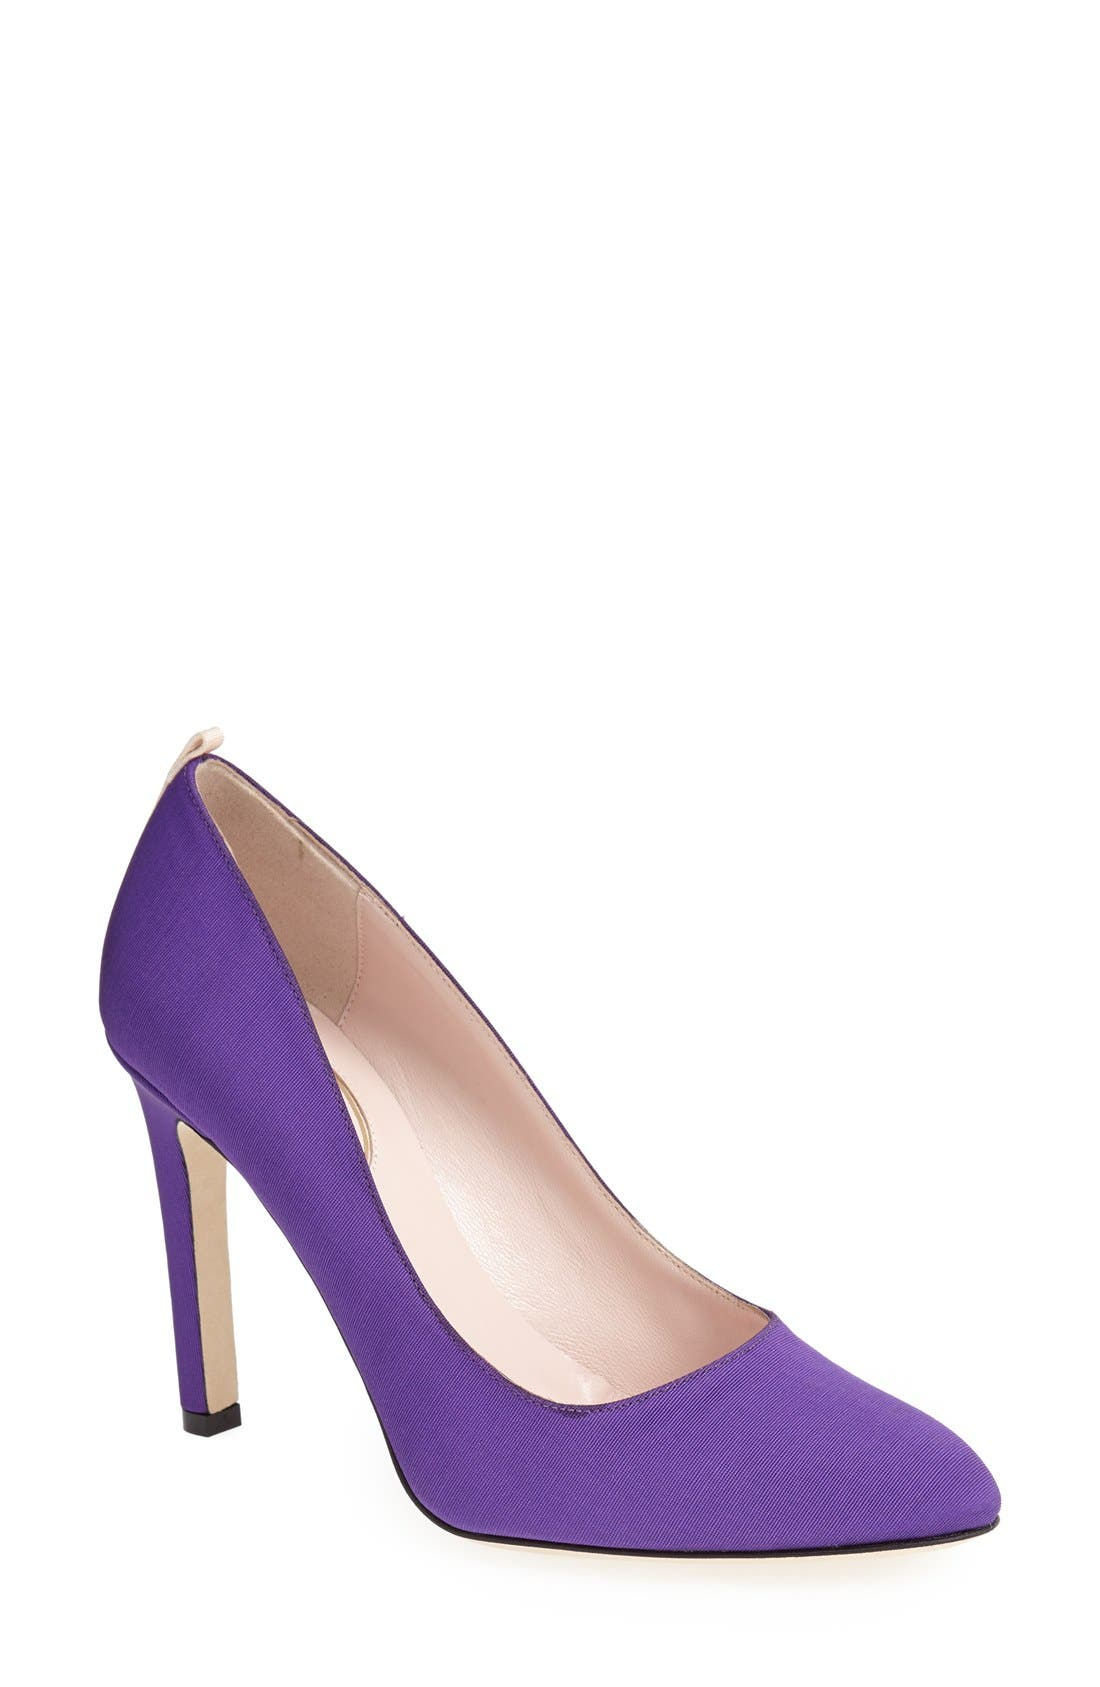 Main Image - SJP 'Lady' Pump